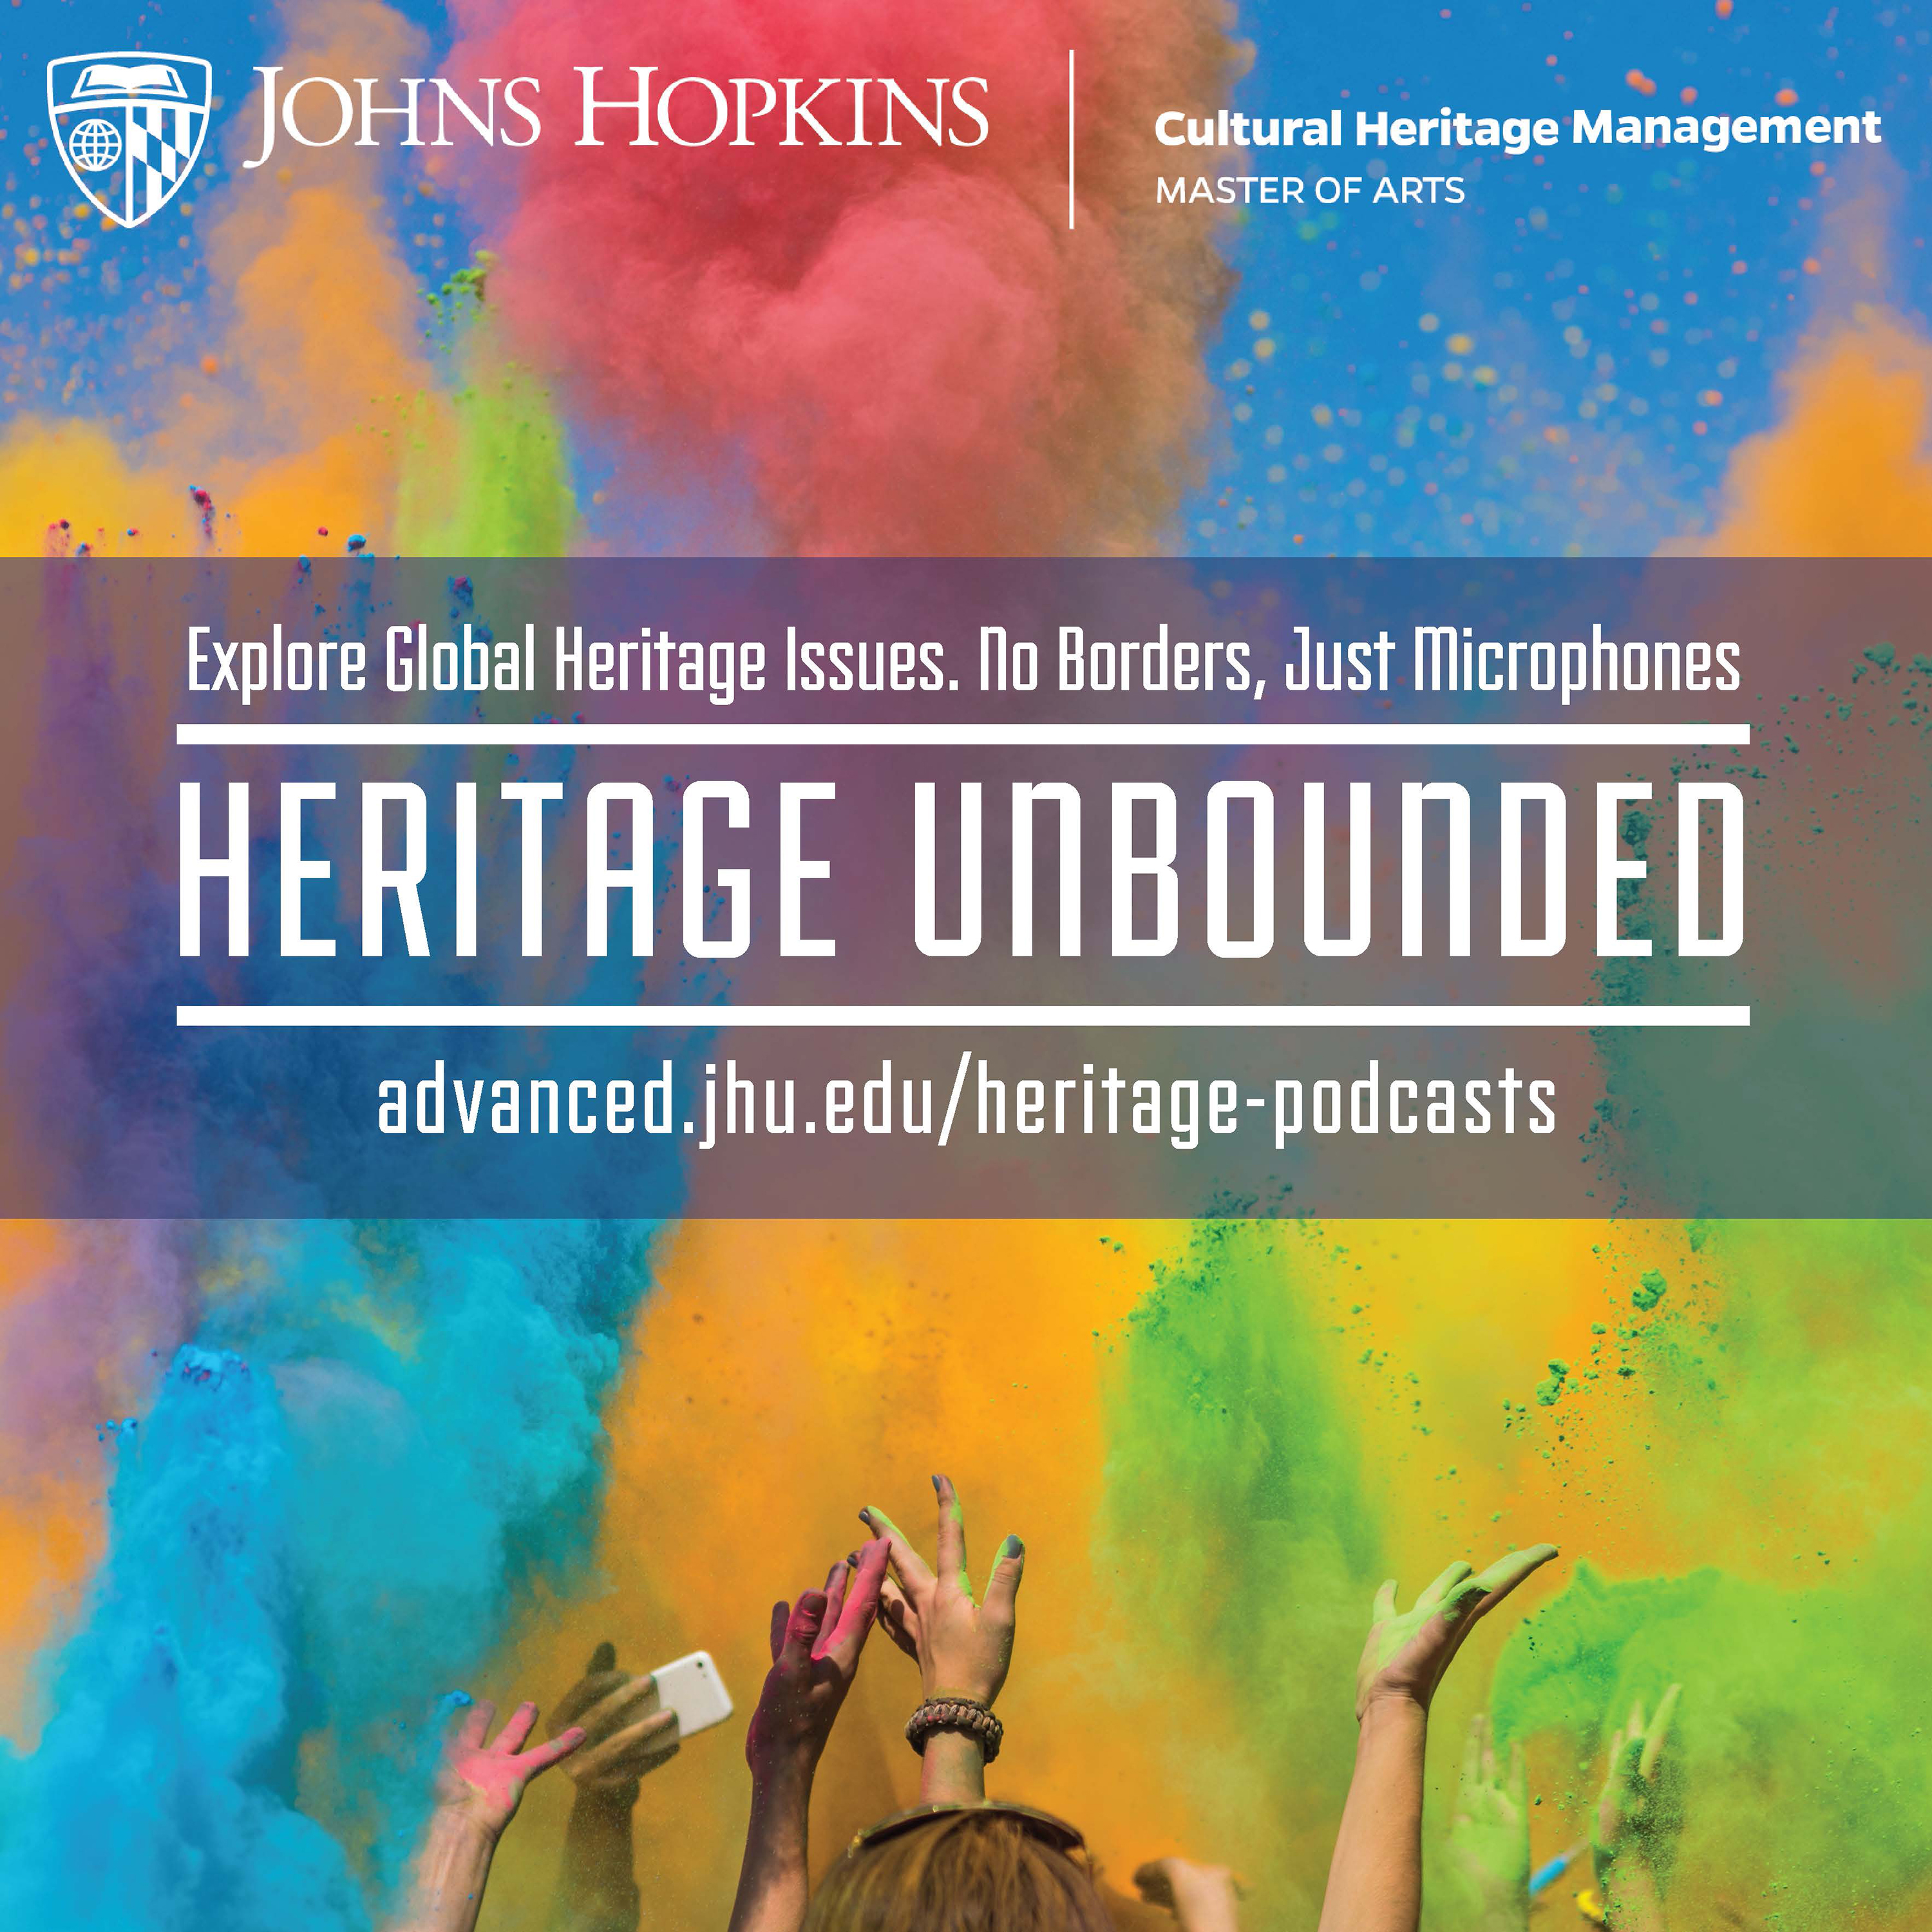 Heritage Unbounded